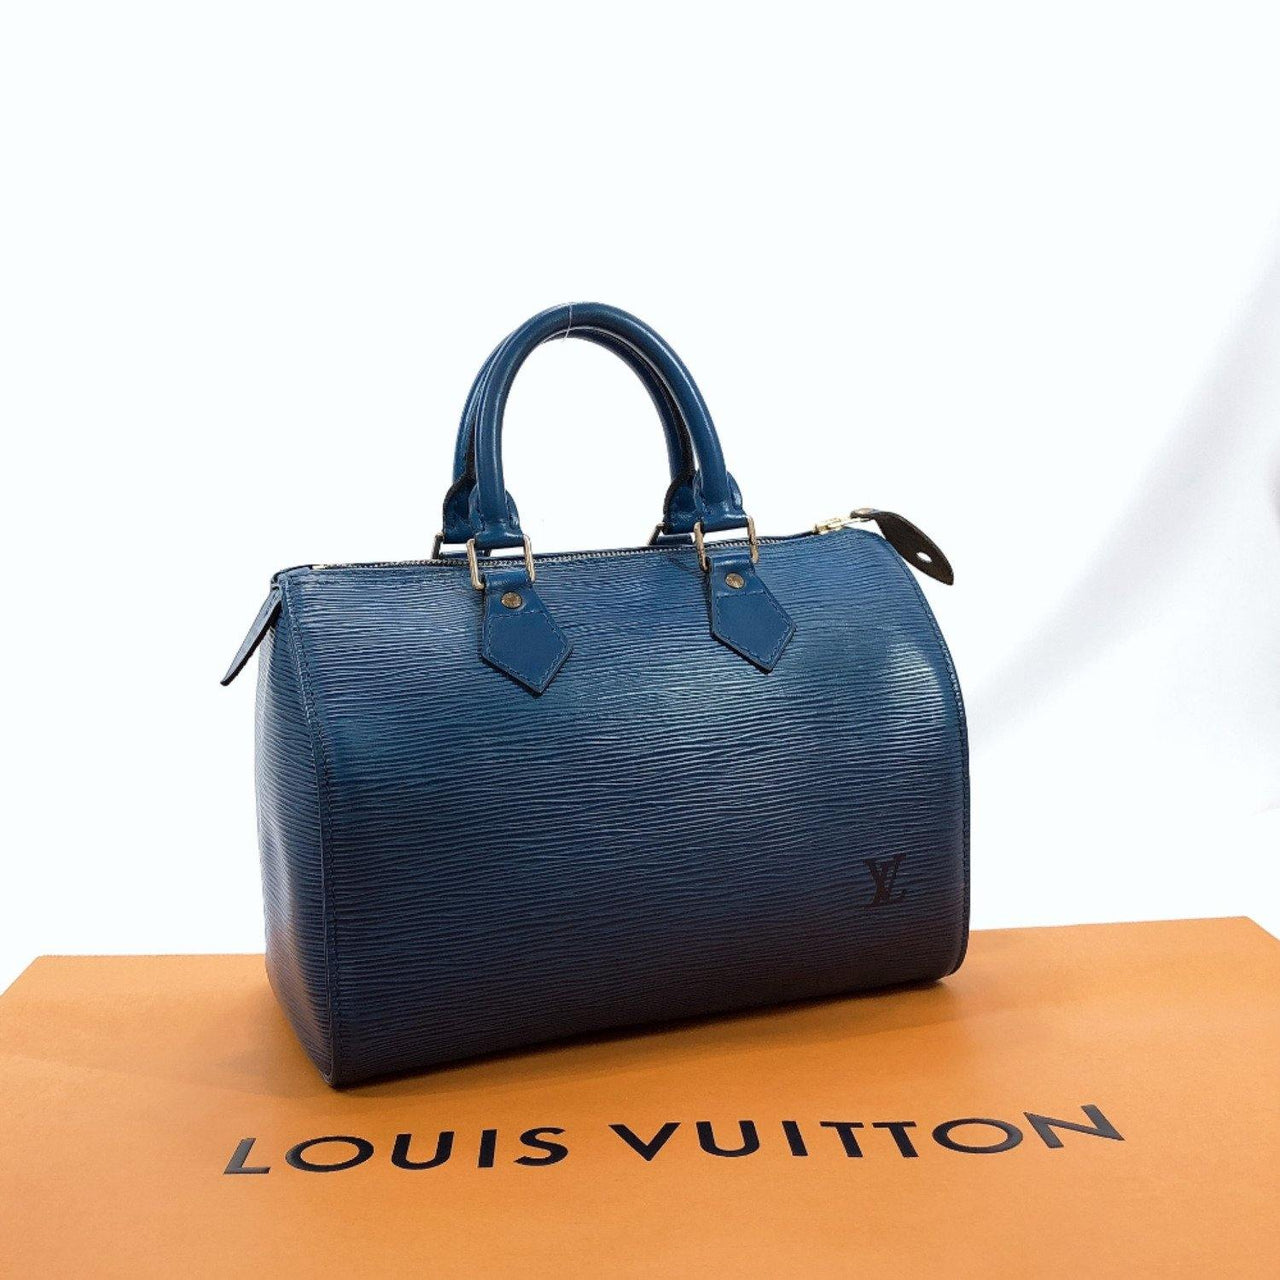 LOUIS VUITTON Handbag M43015 Speedy 25 vintage Epi Leather blue Women Used - JP-BRANDS.com